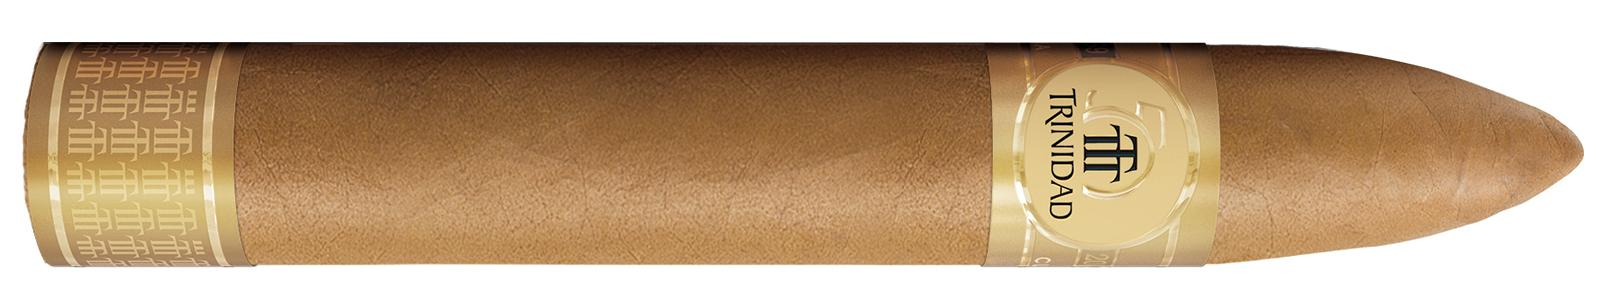 The Trinidad 50 Aniversario cigar